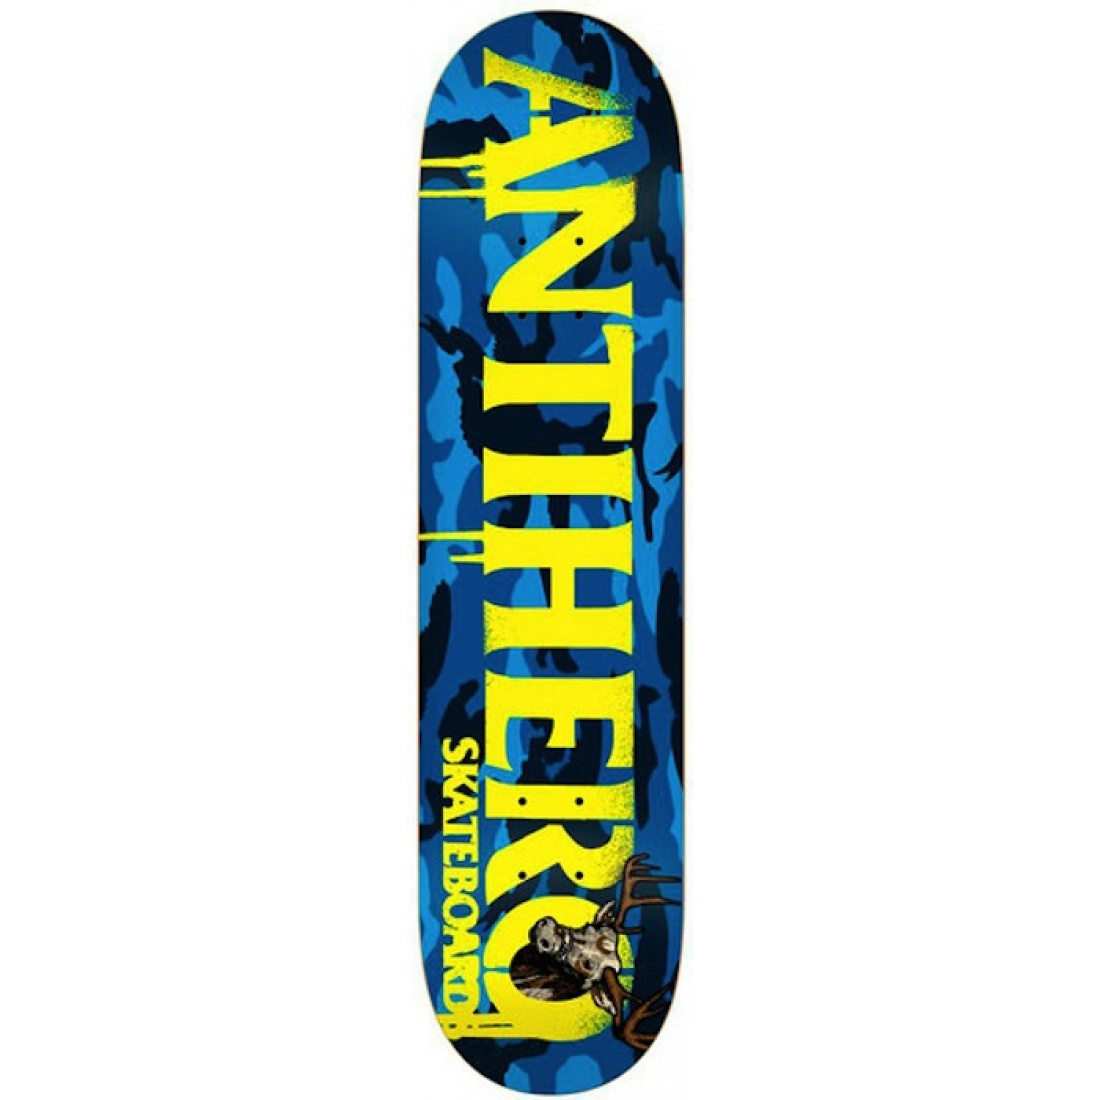 AH-Cow Horn Small 7.8 Deck